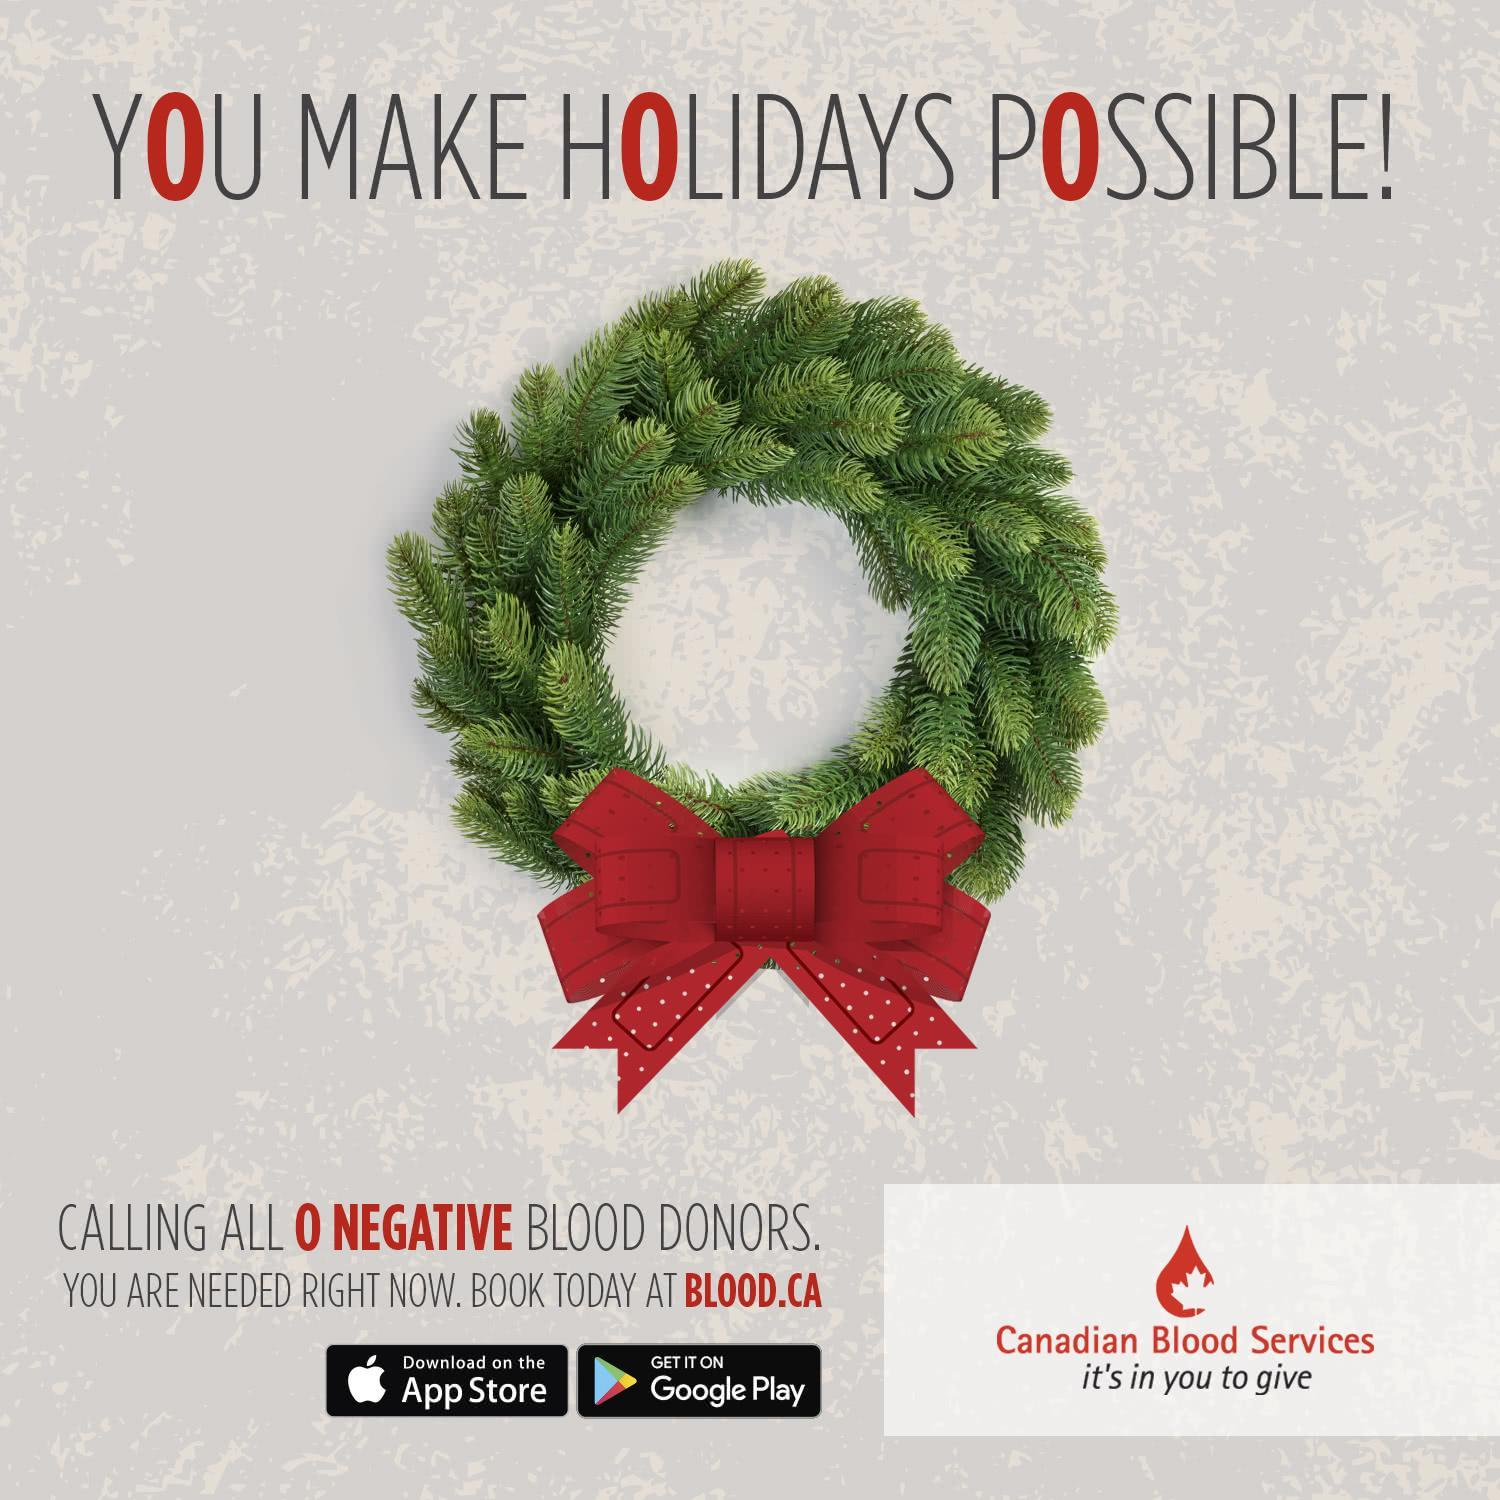 You make the holidays possible!